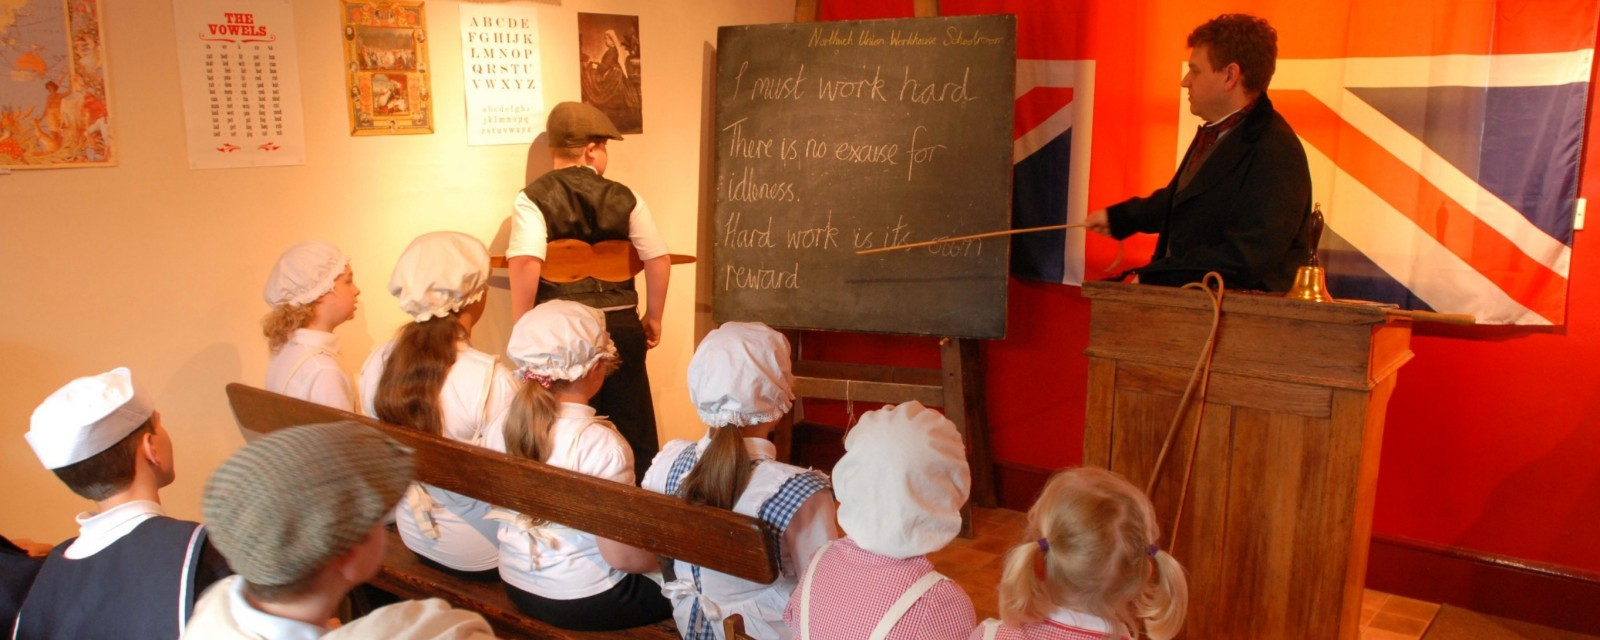 WH Victorian Workhouse Schoolroom